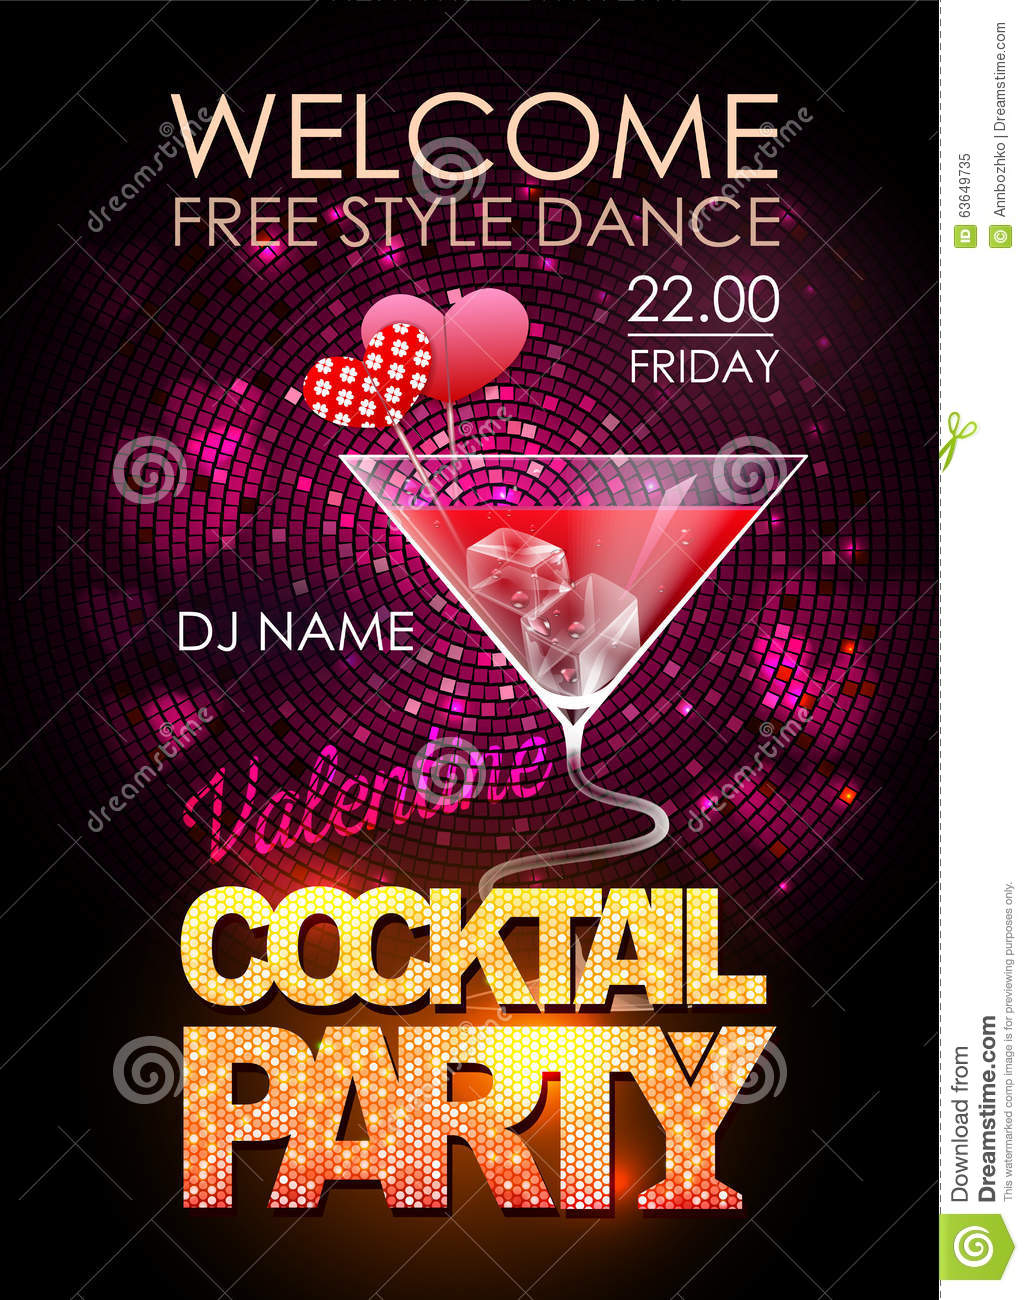 disco cocktail party poster stock vector illustration 63649735. Black Bedroom Furniture Sets. Home Design Ideas